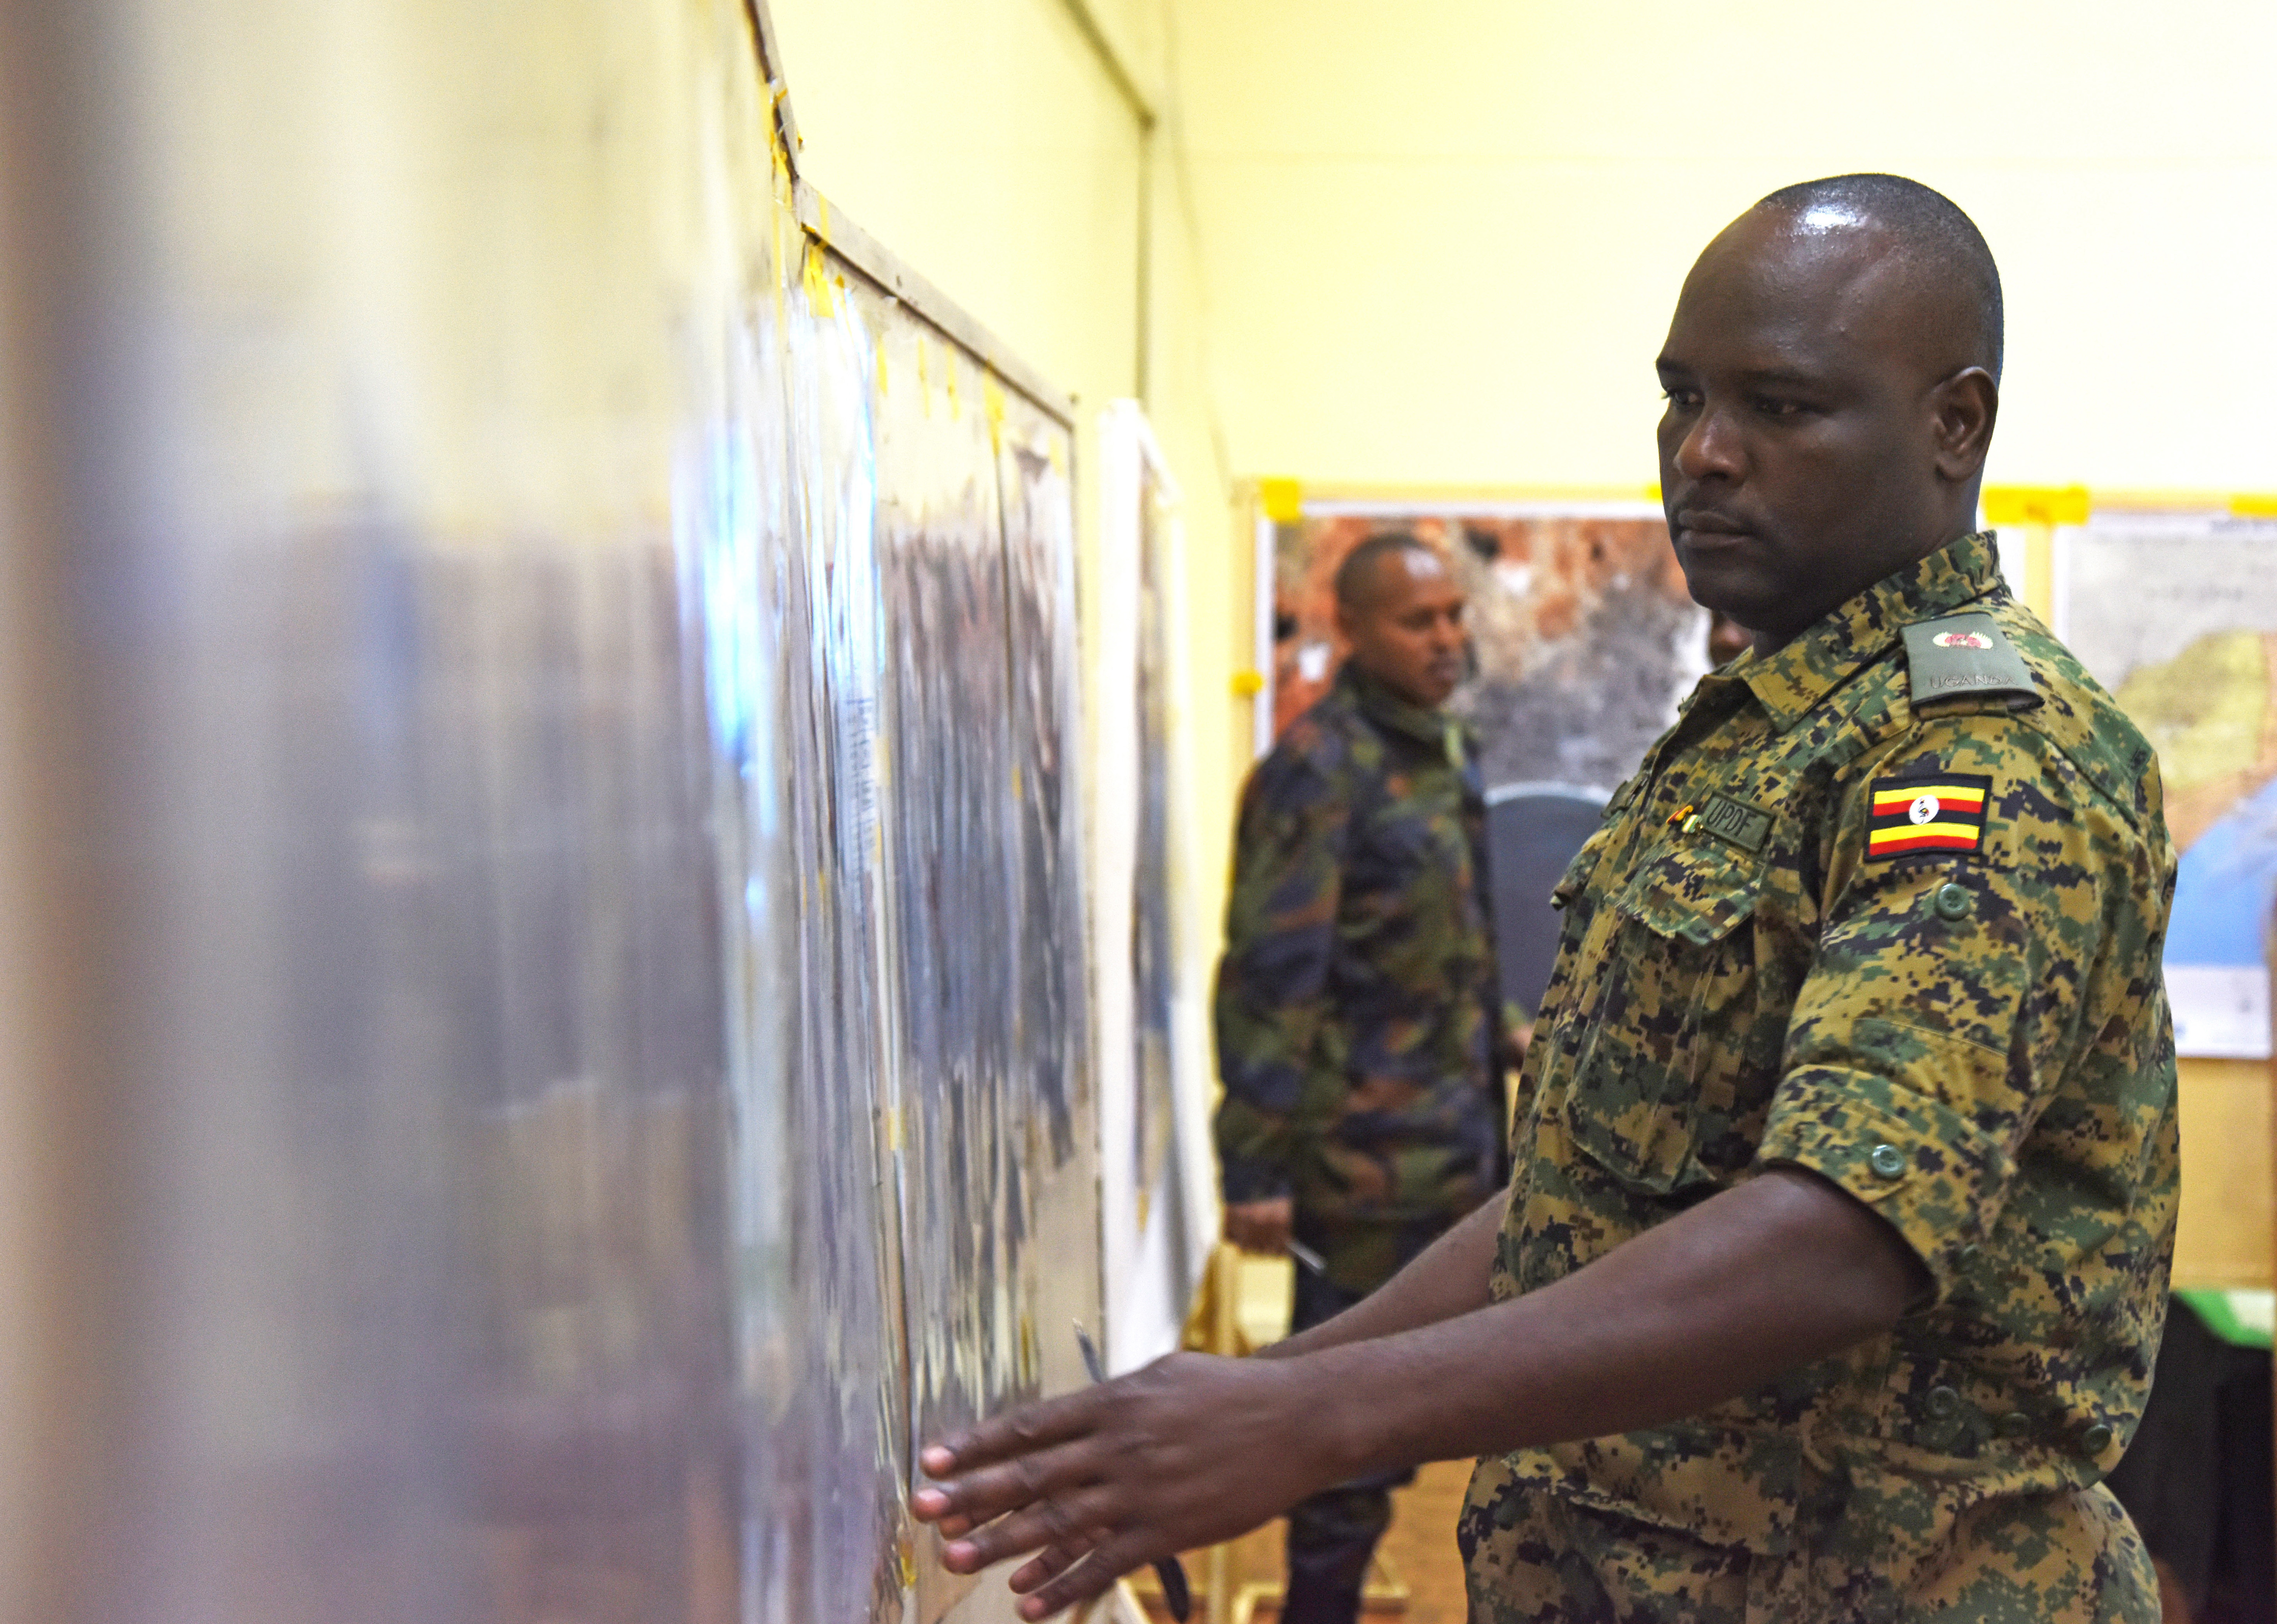 A Ugandan military officer analyzes maps prior to an exercise Feb. 29, 2016, during an African Union Mission in Somalia staff officers course in Nairobi, Kenya. The course included traditional classroom instruction, hands-on application, practical exercises, exposure to high-level military decision-making, and ended with one final exercise.  (U.S. Air Force photo by Staff Sgt. Kate Thornton)